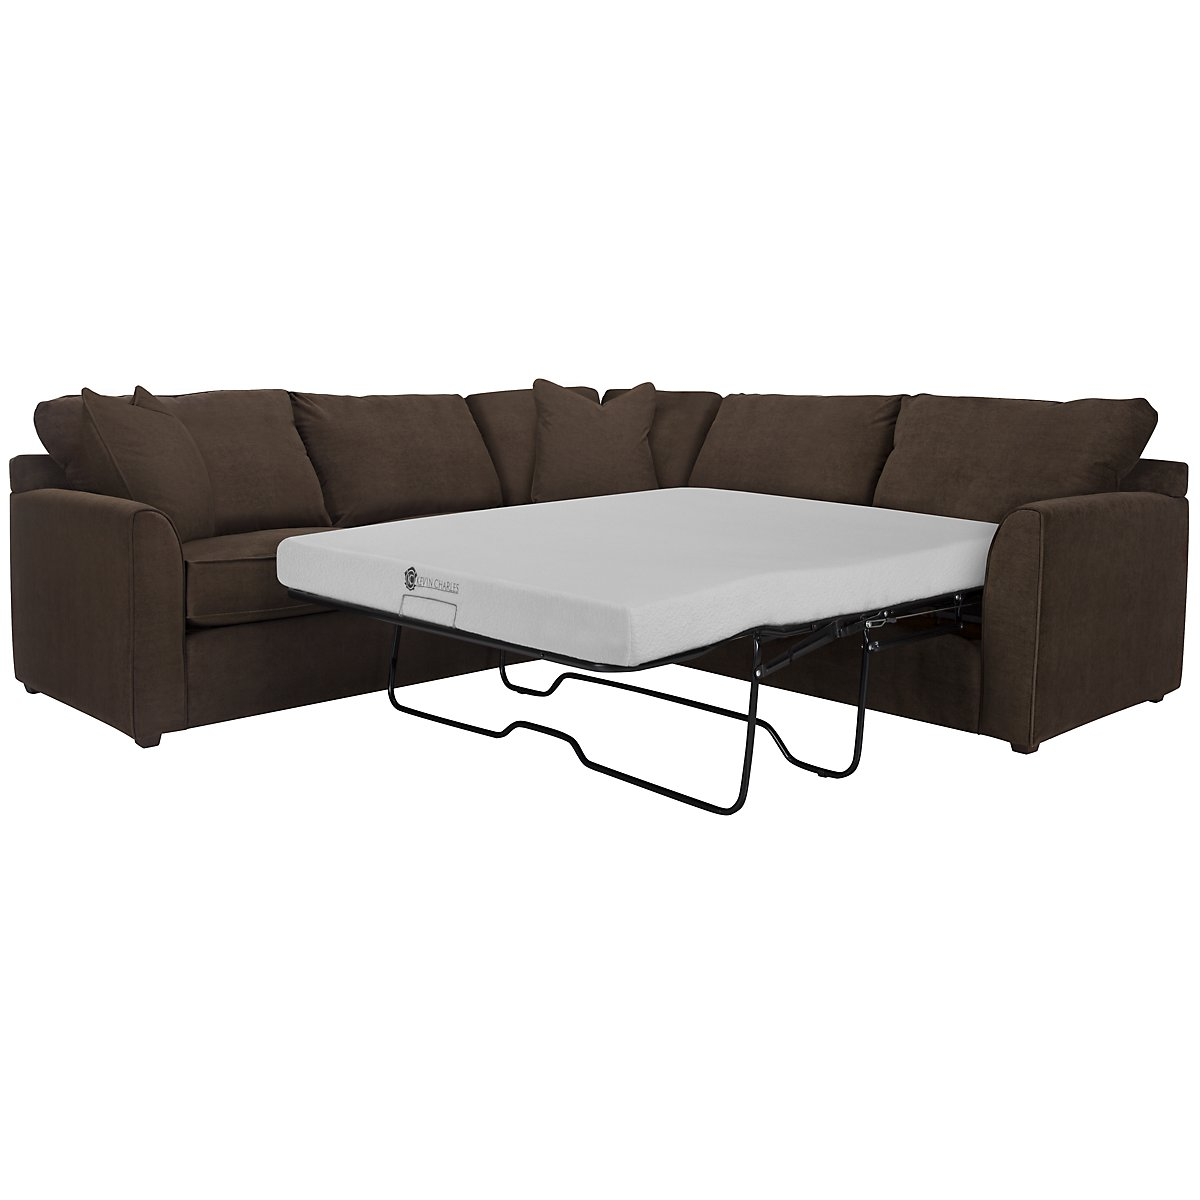 Express3 Dark Brown Microfiber Two-Arm Right Memory Foam Sleeper Sectional